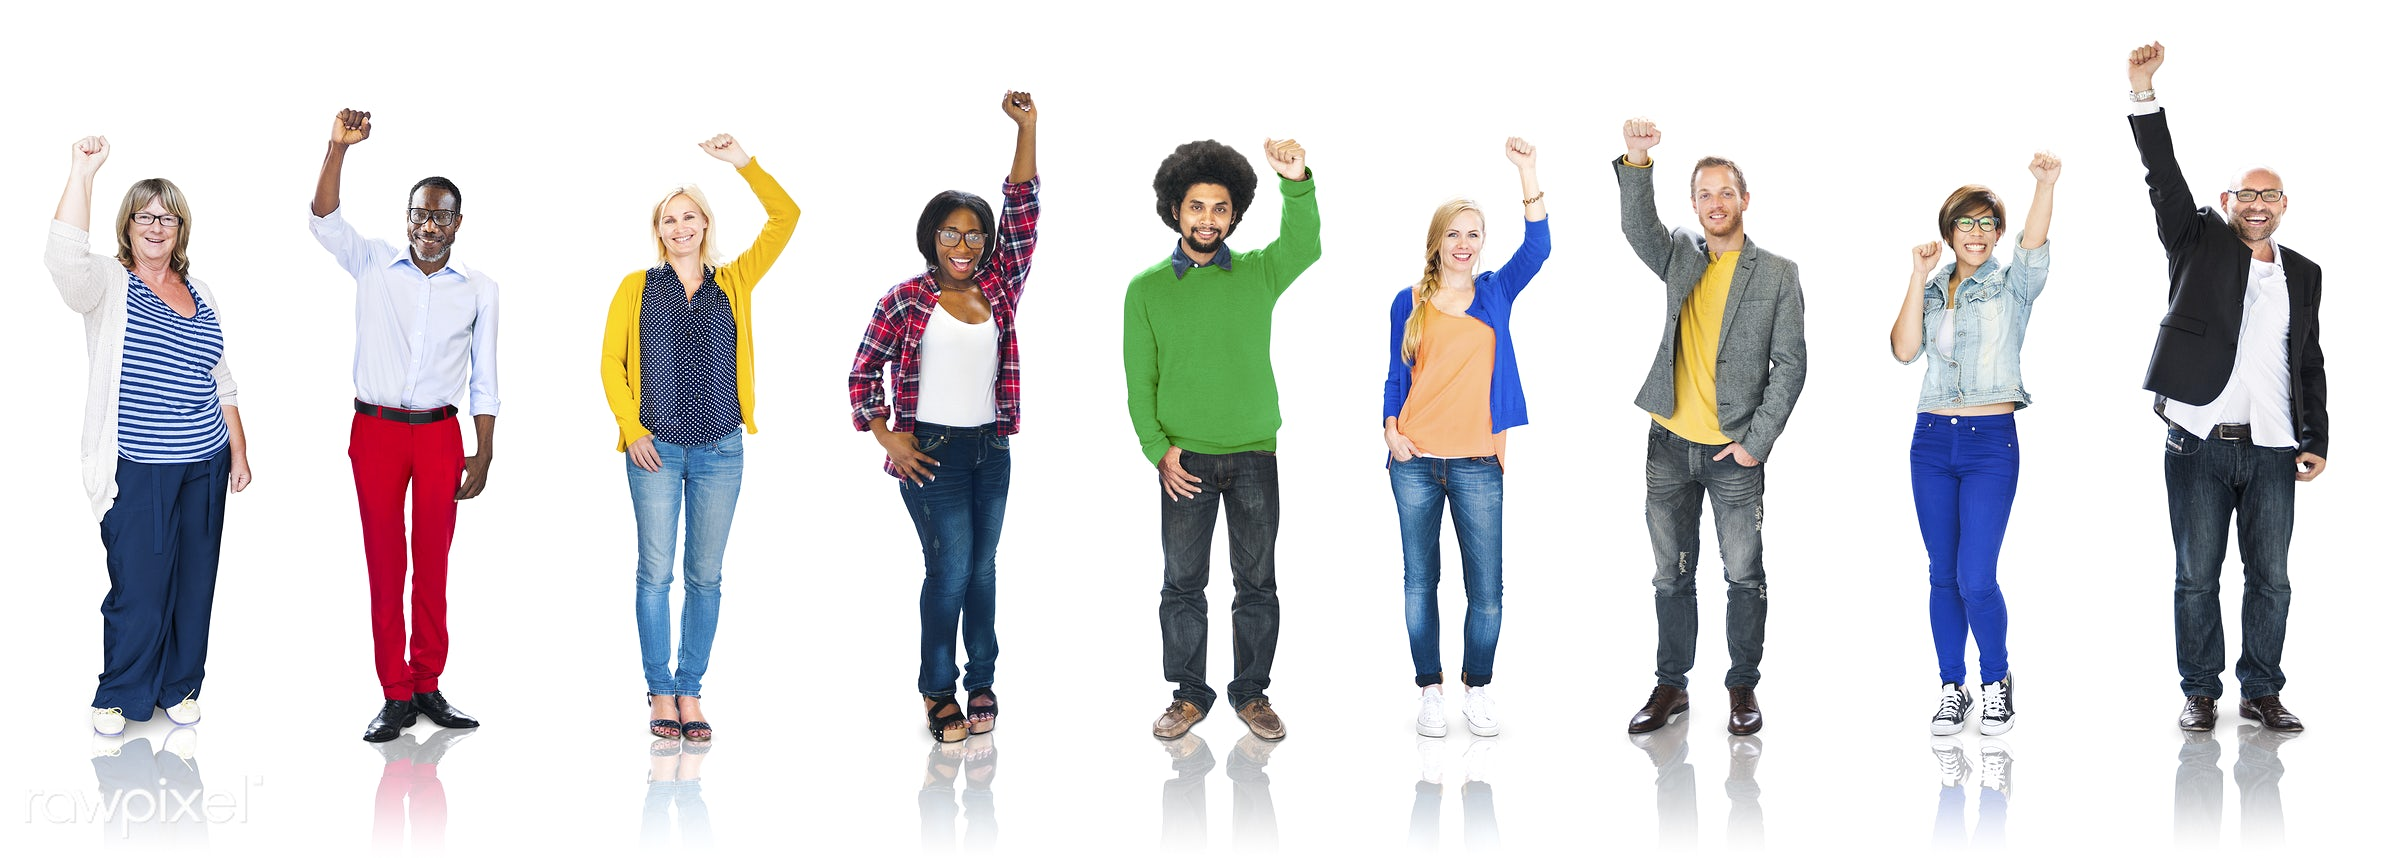 african, african descent, afro, arms raised, asian, asian ethnicity, casual, celebration, cheerful, colorful, communication...